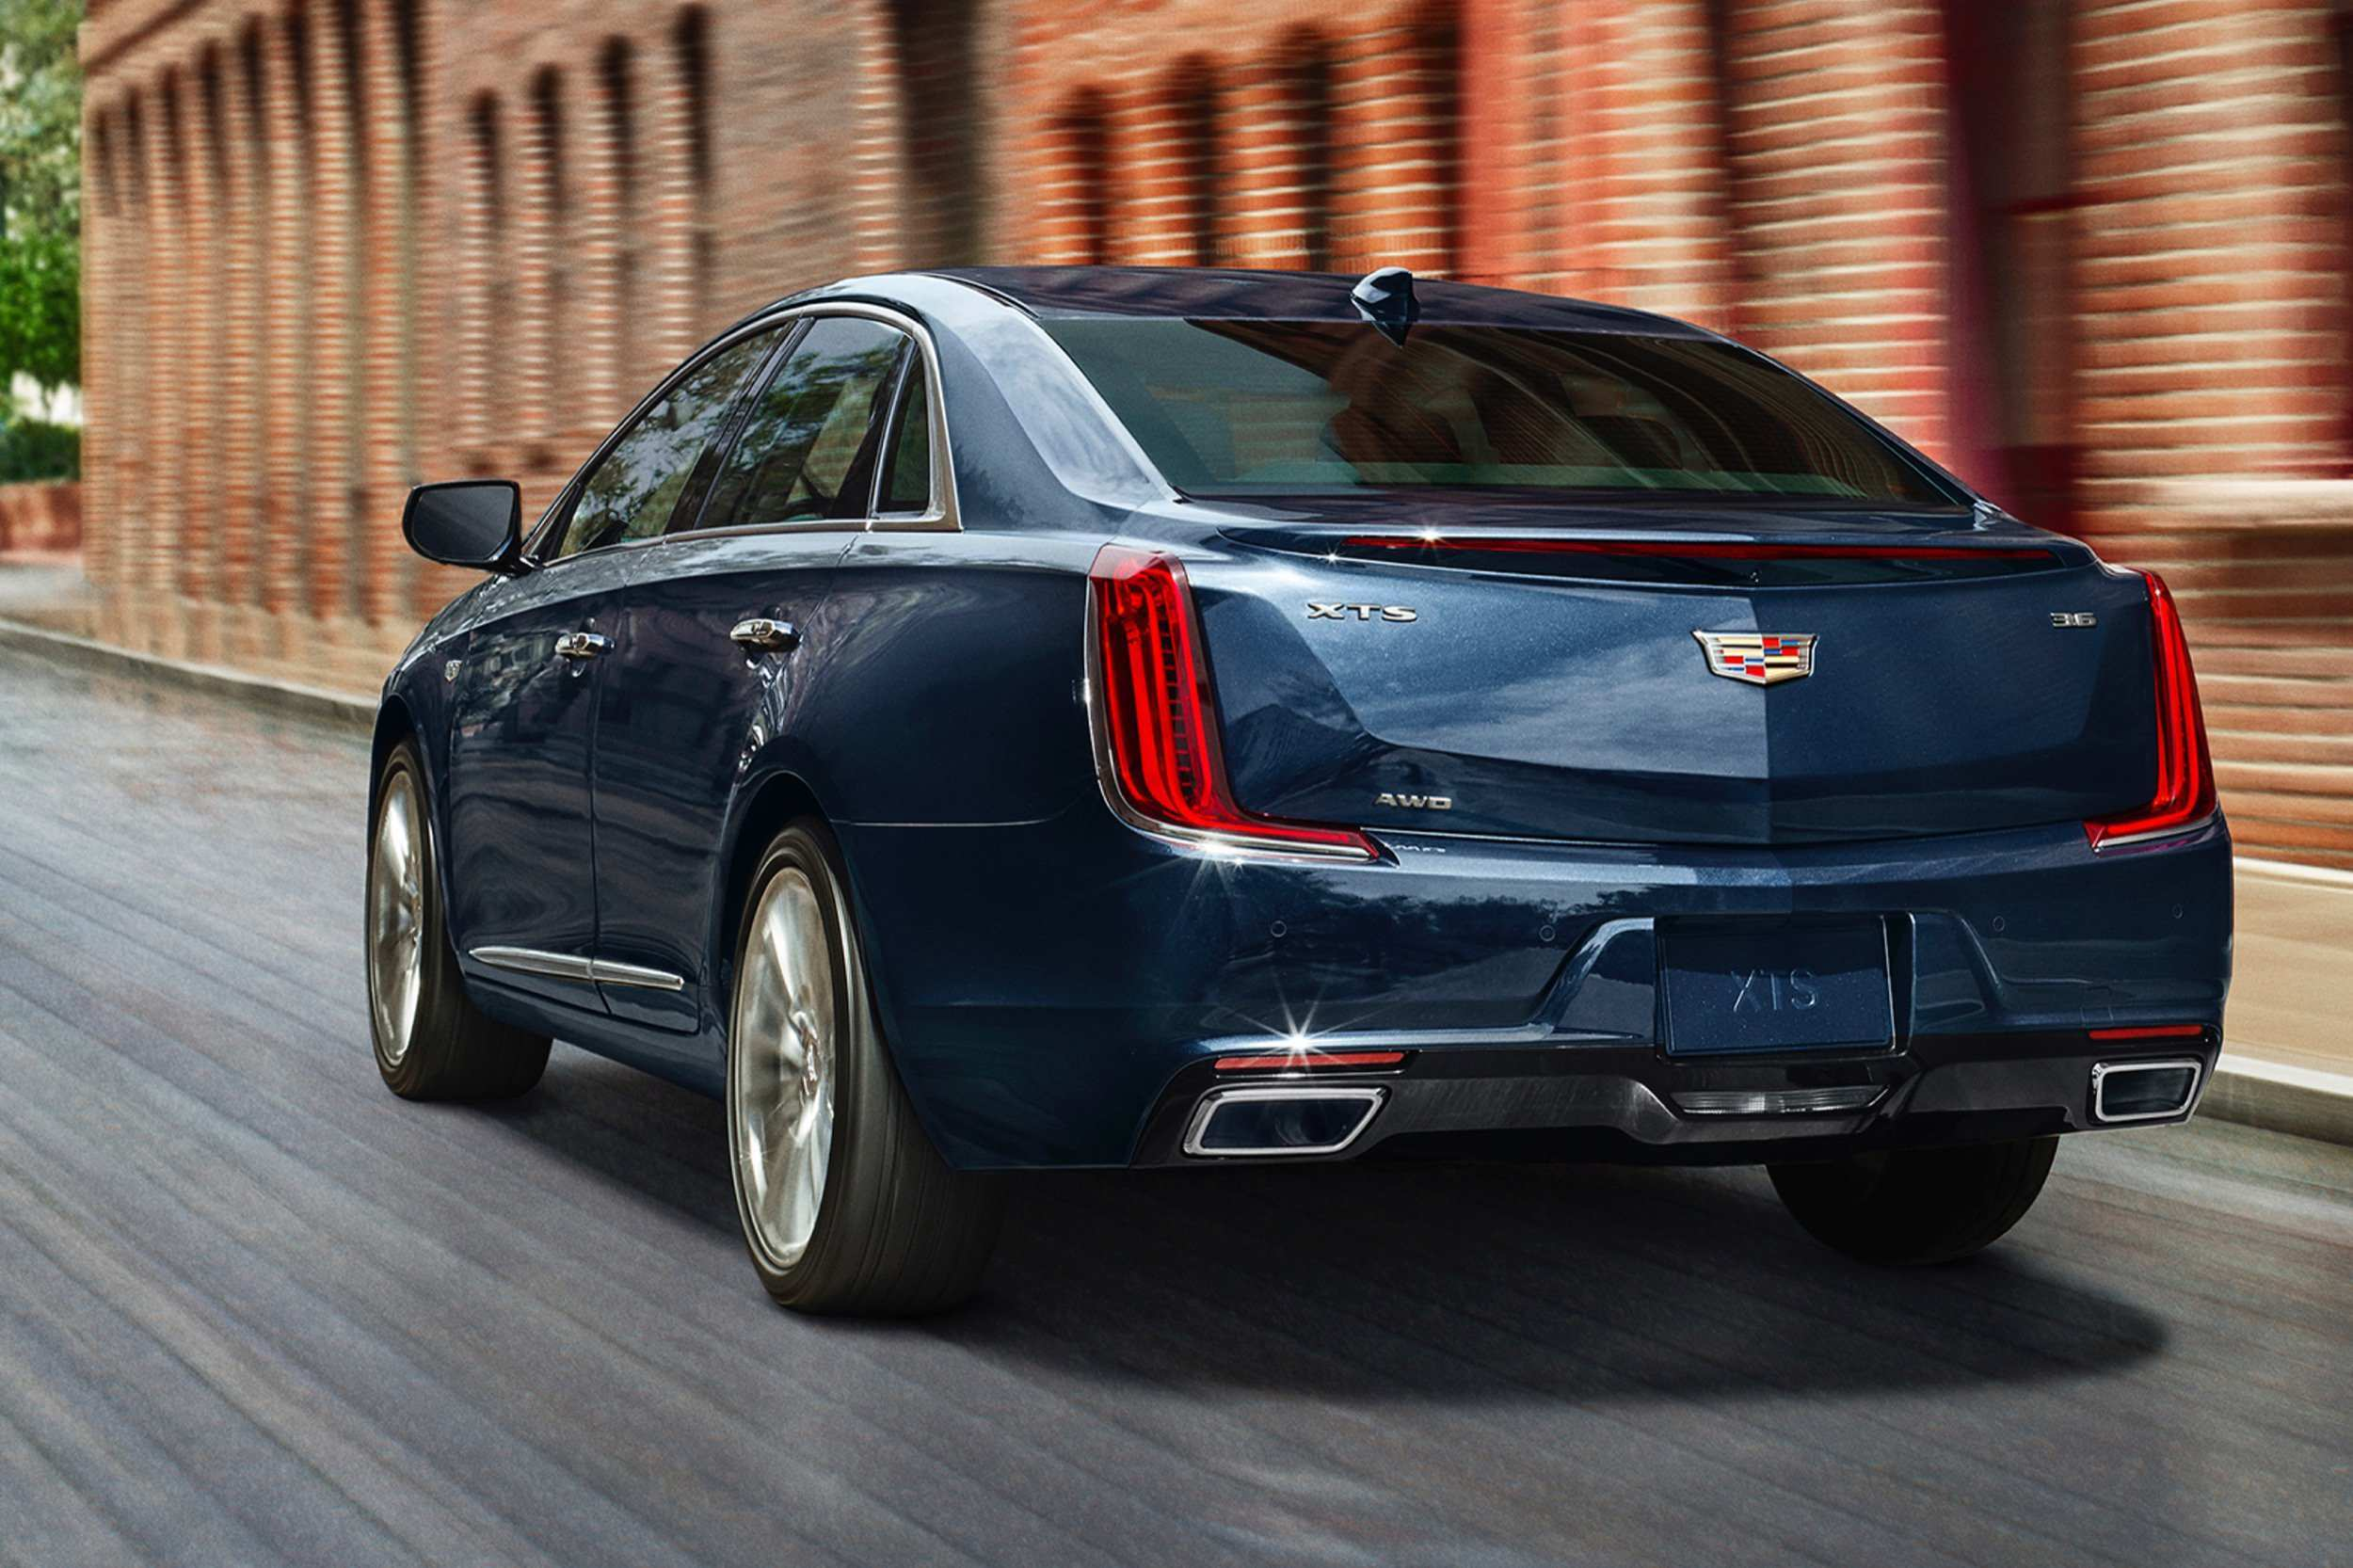 96 All New Cadillac Xts 2020 Reviews